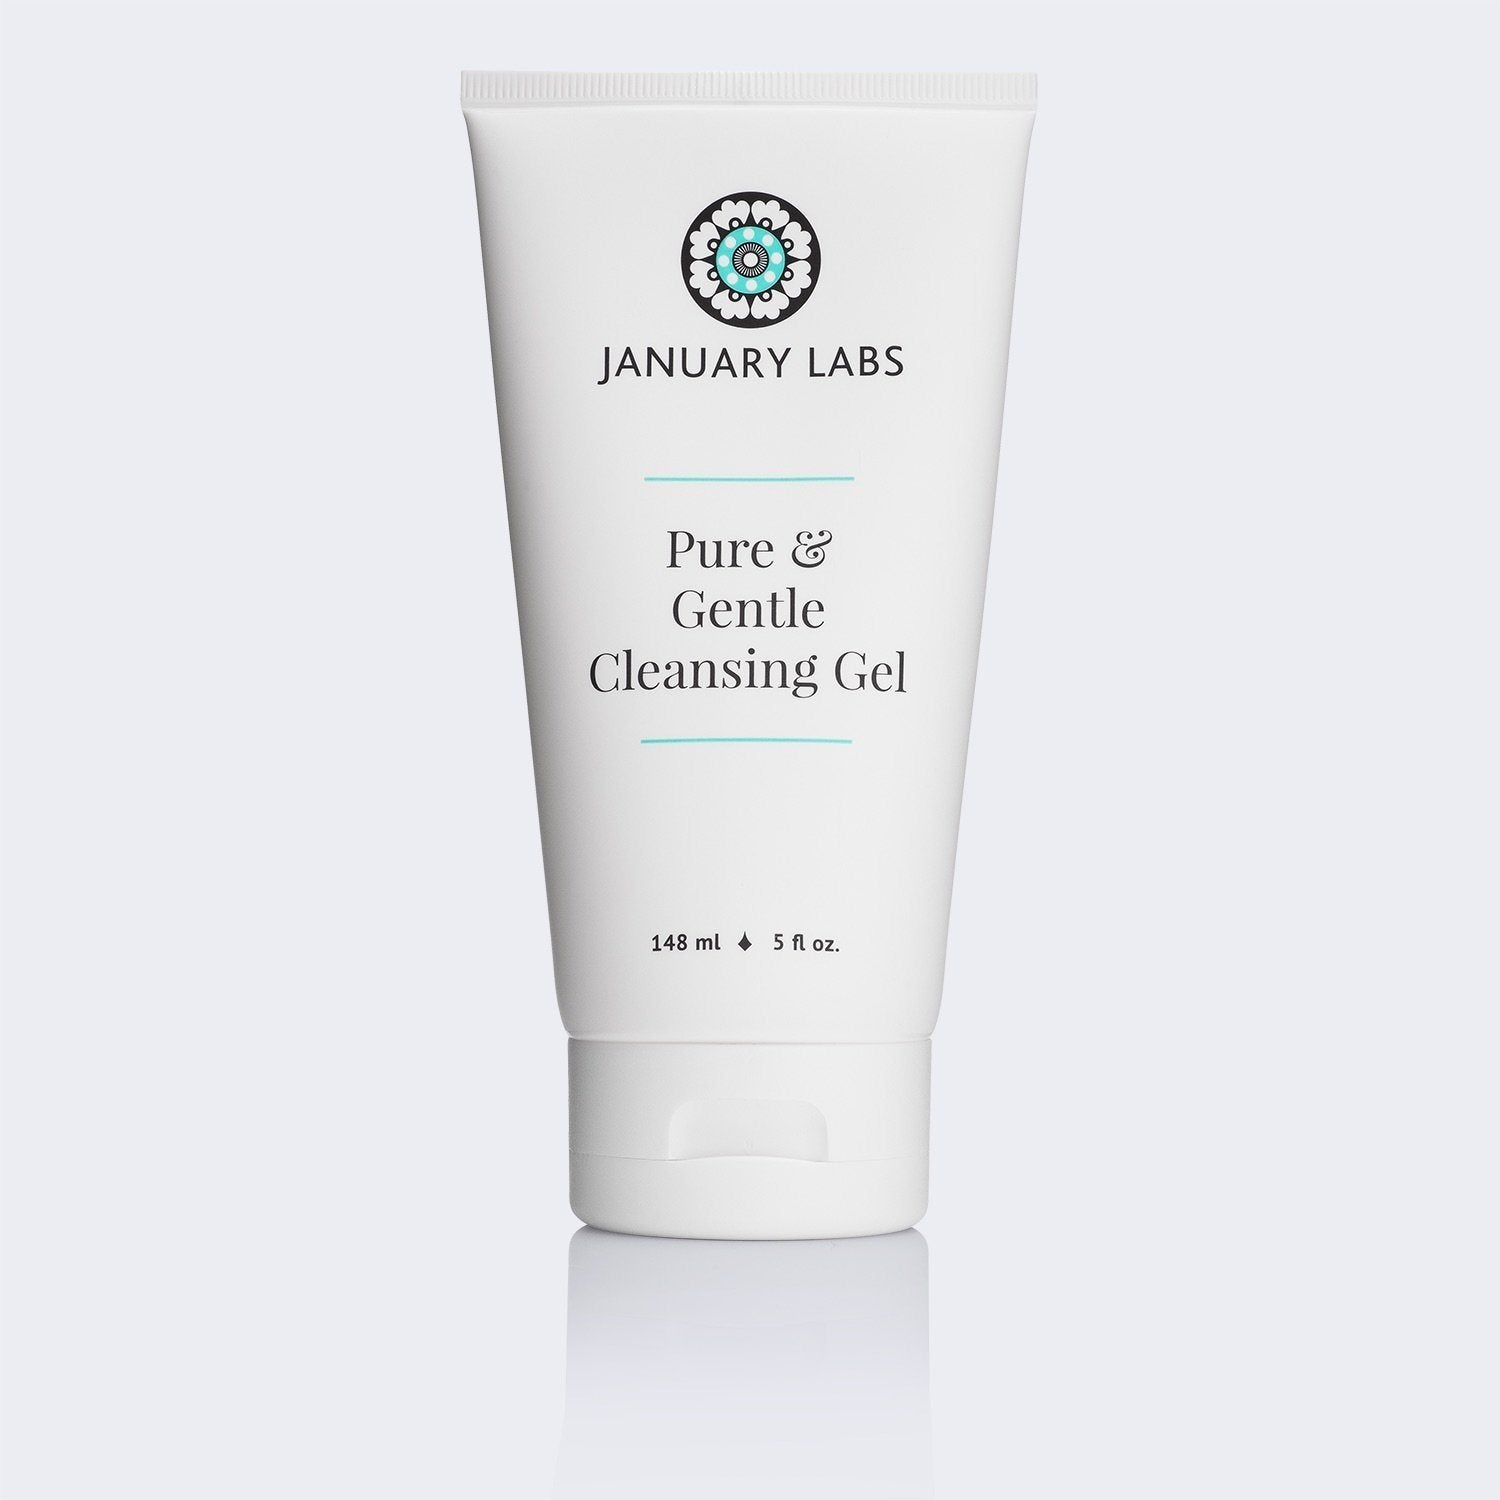 3dc719fb6b january-labs-pure-gentle-cleansing-gel-skincare -cleanse-january-labs-233340.jpg?v=1556766890